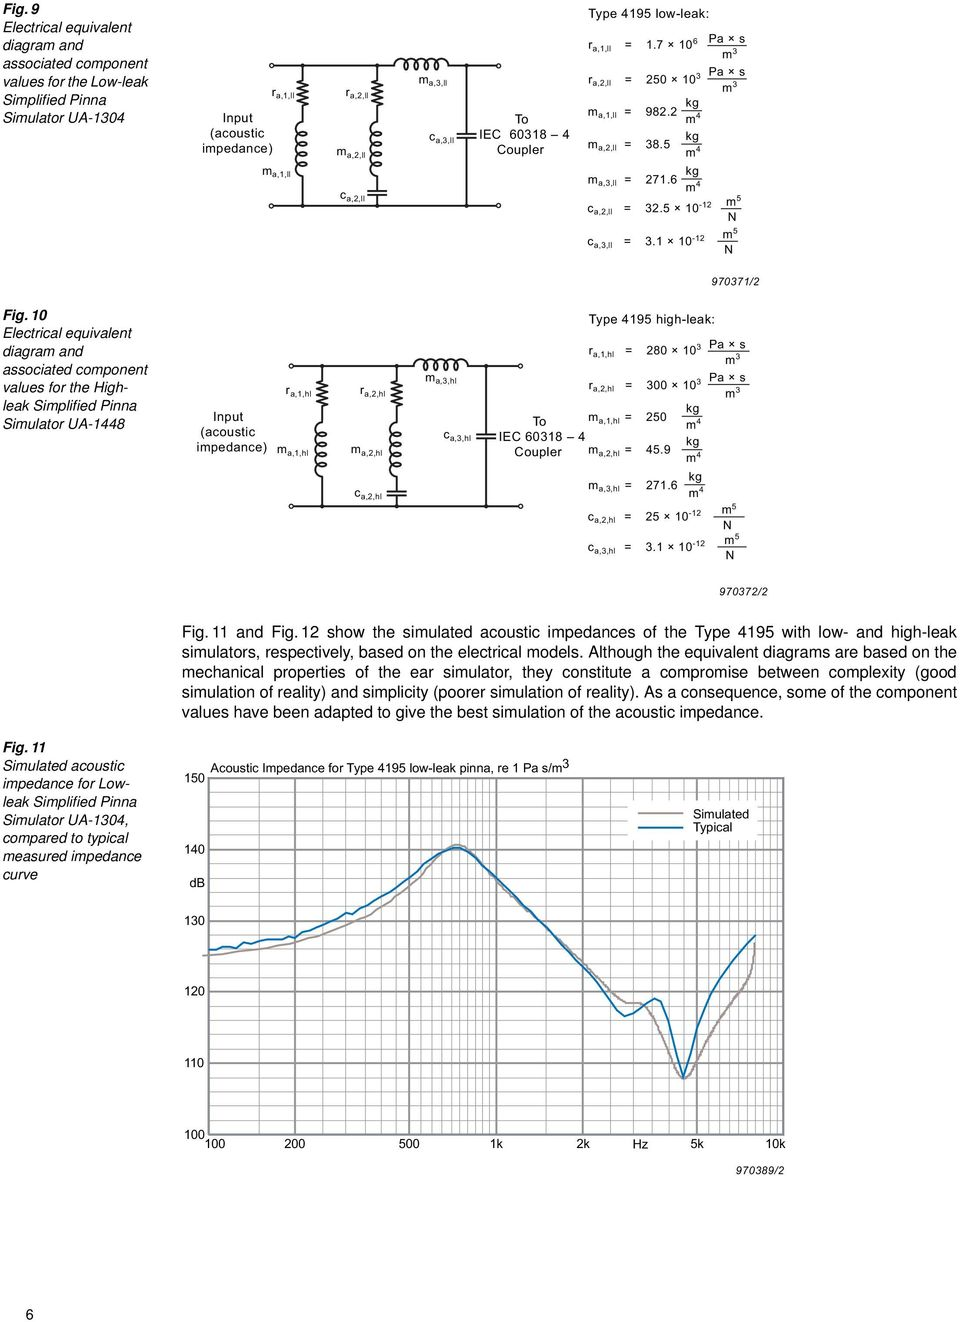 Application Note Ear Simulator For Telephonometry Use Of Wideband Residential Wiring 10 Electrical Equivalent Diagram And Associated Component Values The Highleak Ua 1448 Input